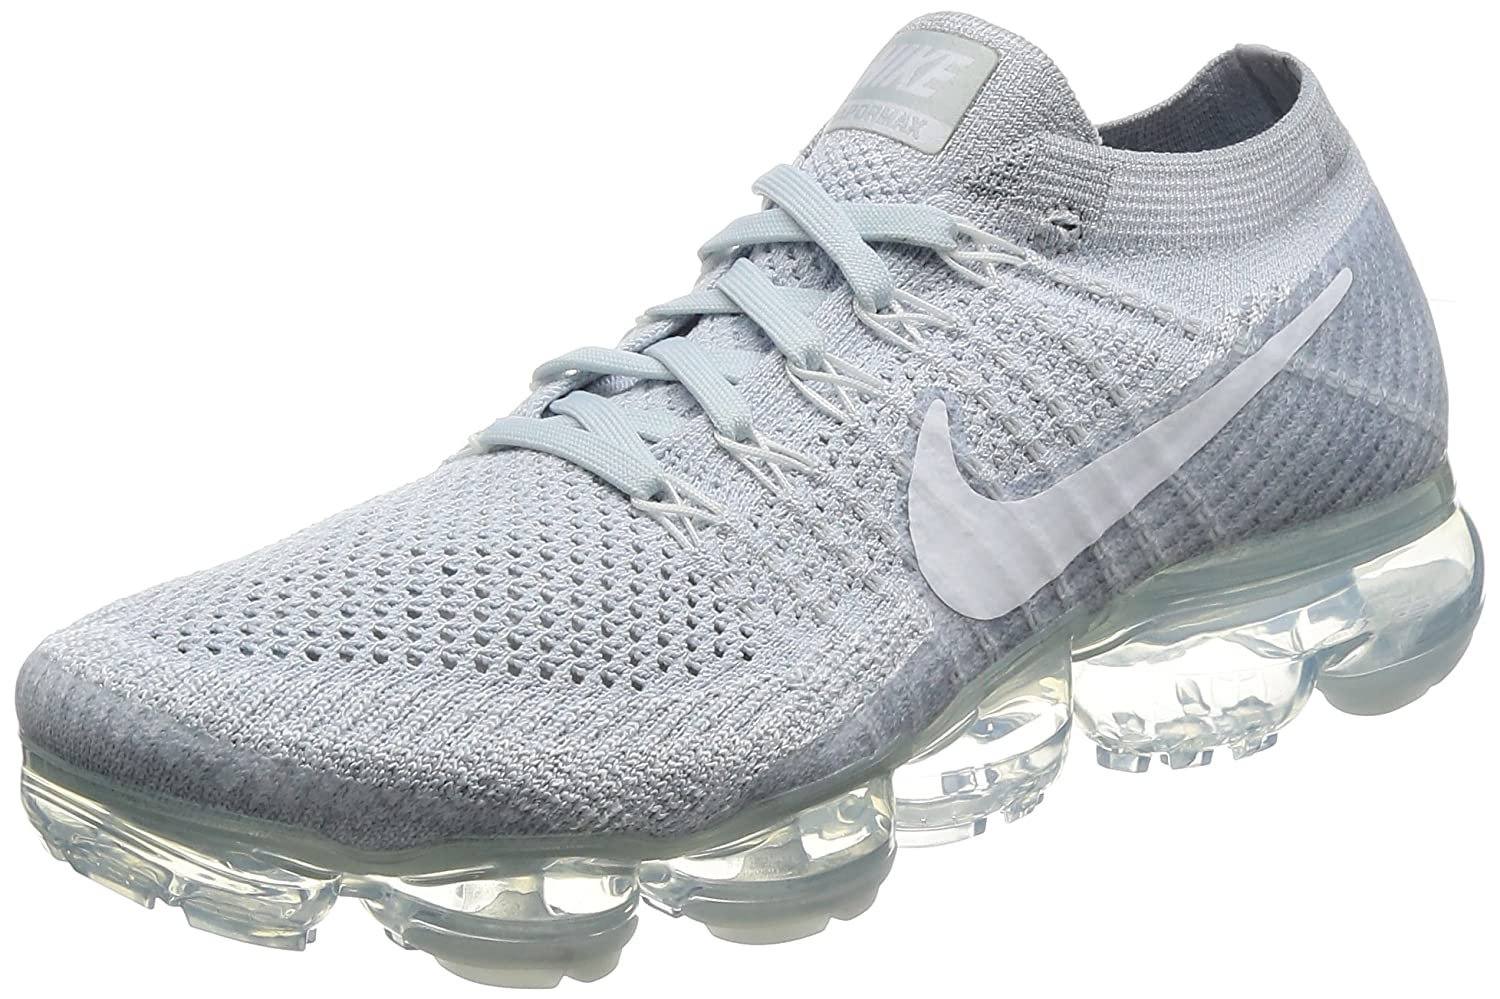 c3d9b47cea Amazon.com | Men's Nike Air Vapormax Flyknit Running Shoe | Fashion Sneakers